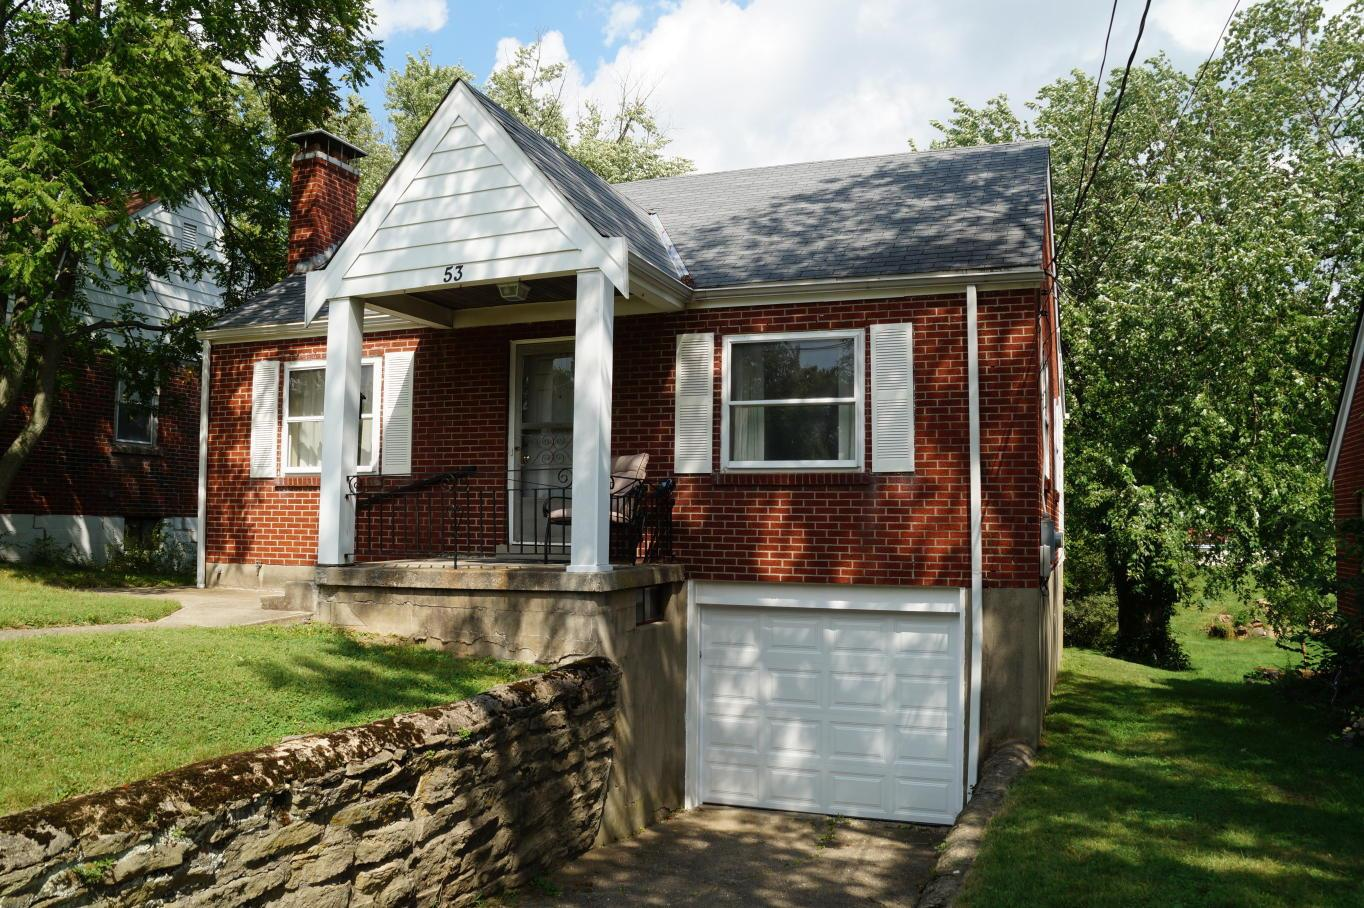 Photo of 53  Eastern Avenue  Elsmere  KY